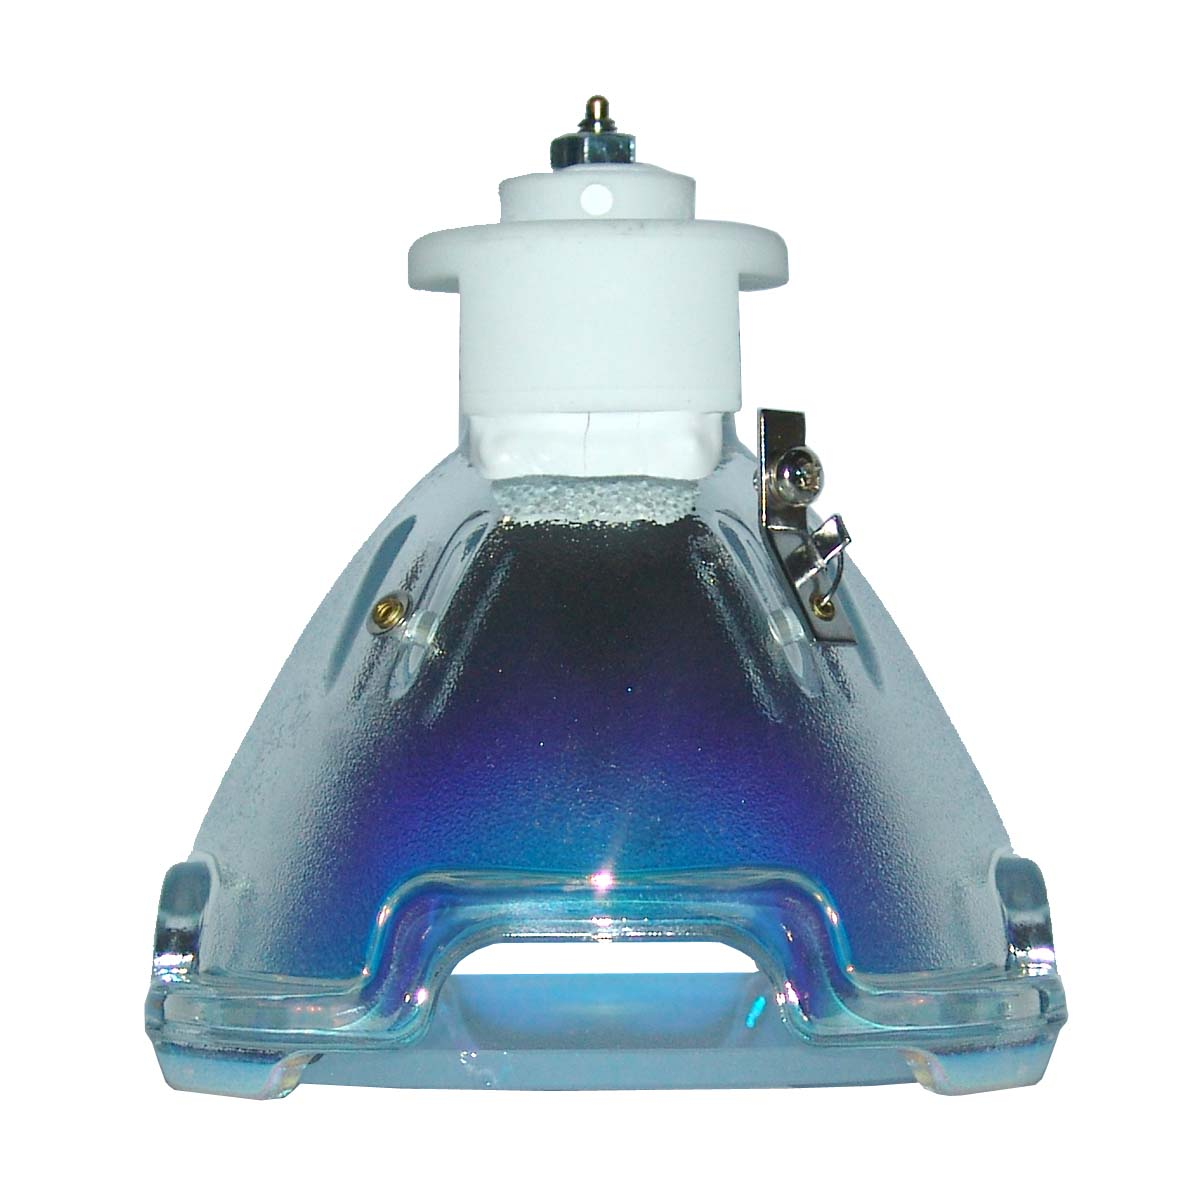 Lutema Economy for Yamaha DPX-1000 Projector Lamp (Bulb Only) - image 4 of 5